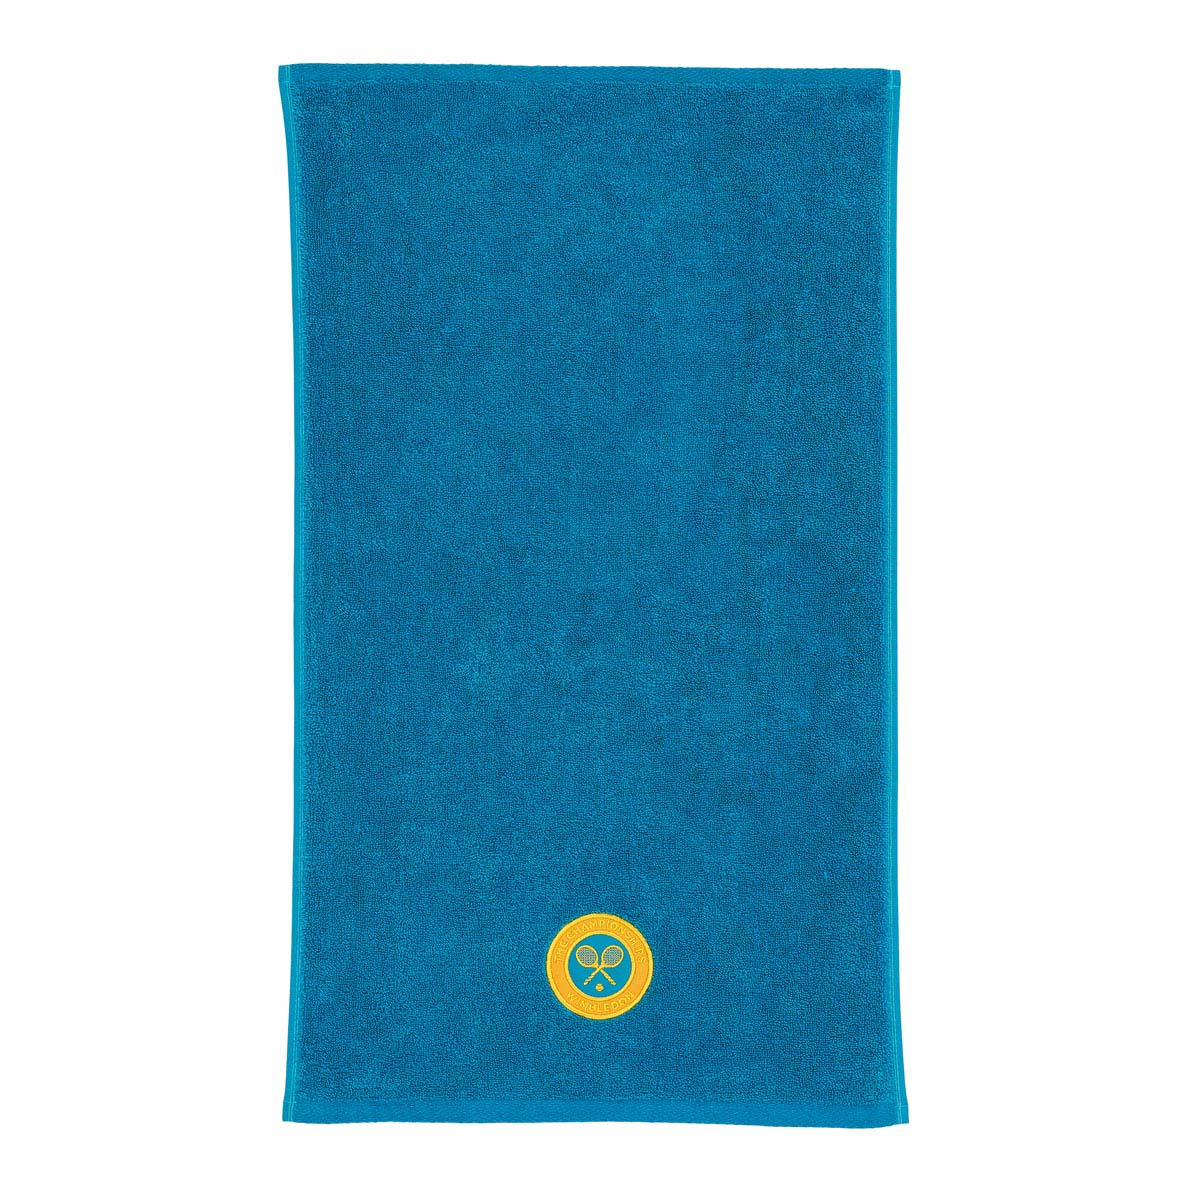 Wimbledon Lady Guest Towel turquoise new | 2021